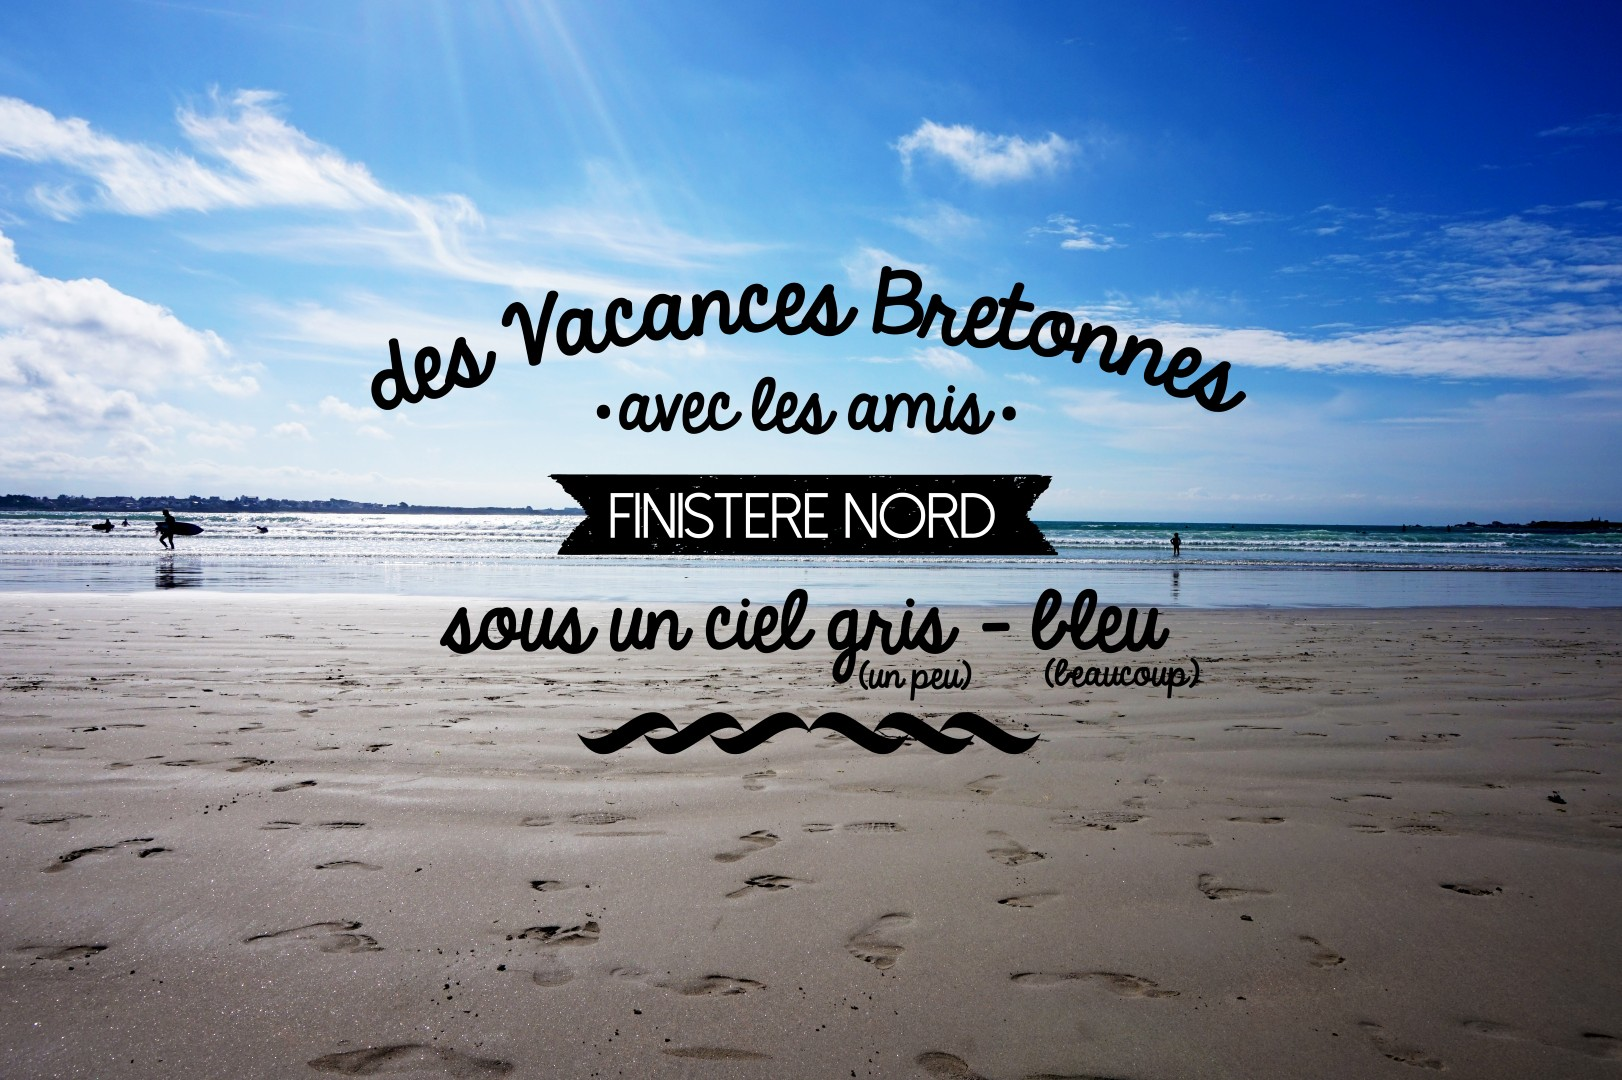 20150608_vacances_finistere_nord (Large)